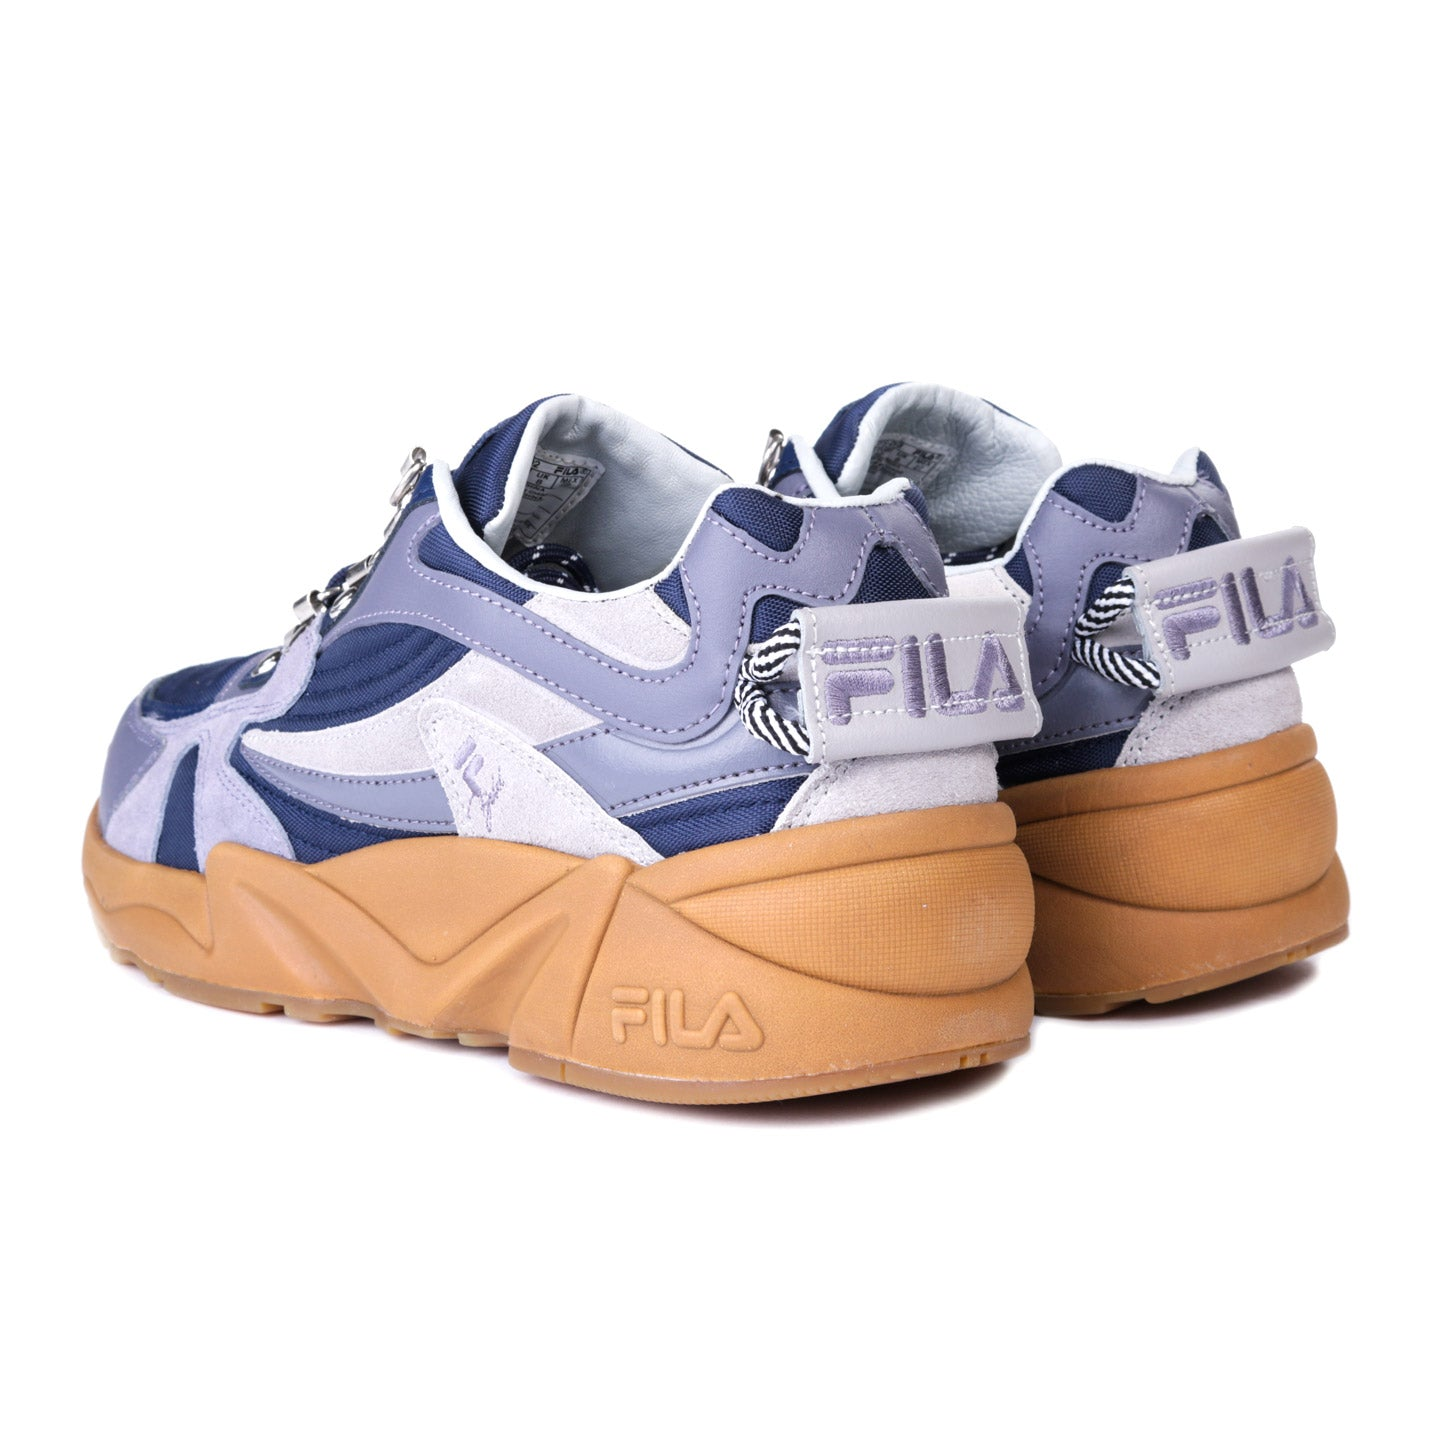 FILA FJELD BY ASTRID ANDERSEN TRAIL-O-BYTE NIGHTSHADOW BLUE / GUM